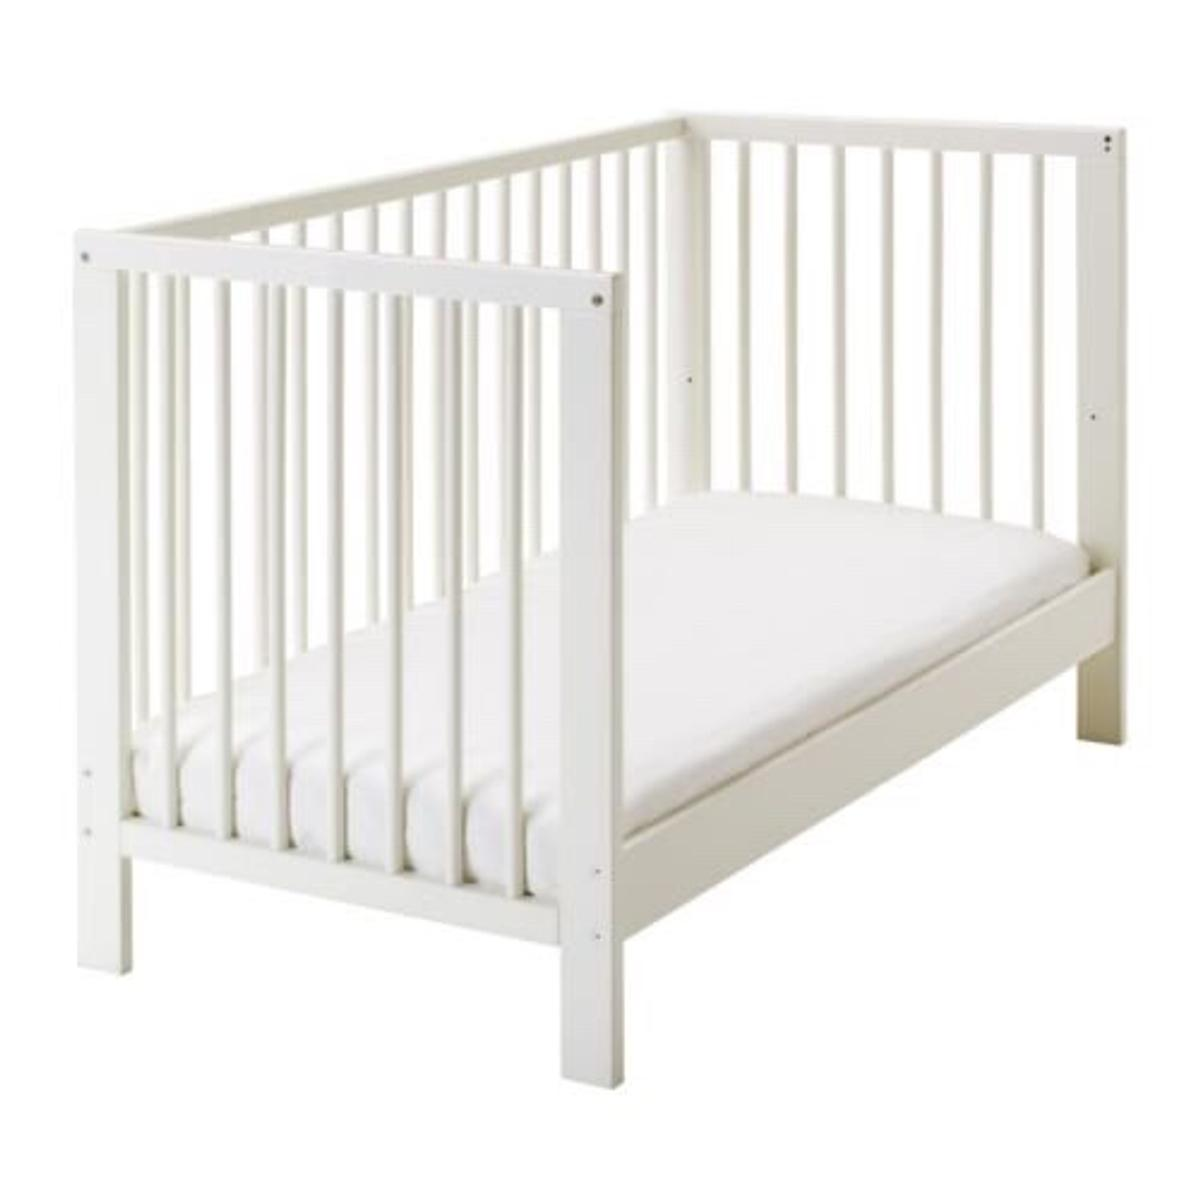 Ikea Gulliver Cot Bed With As New Mattress In Bn14 Worthing For 25 00 Shpock